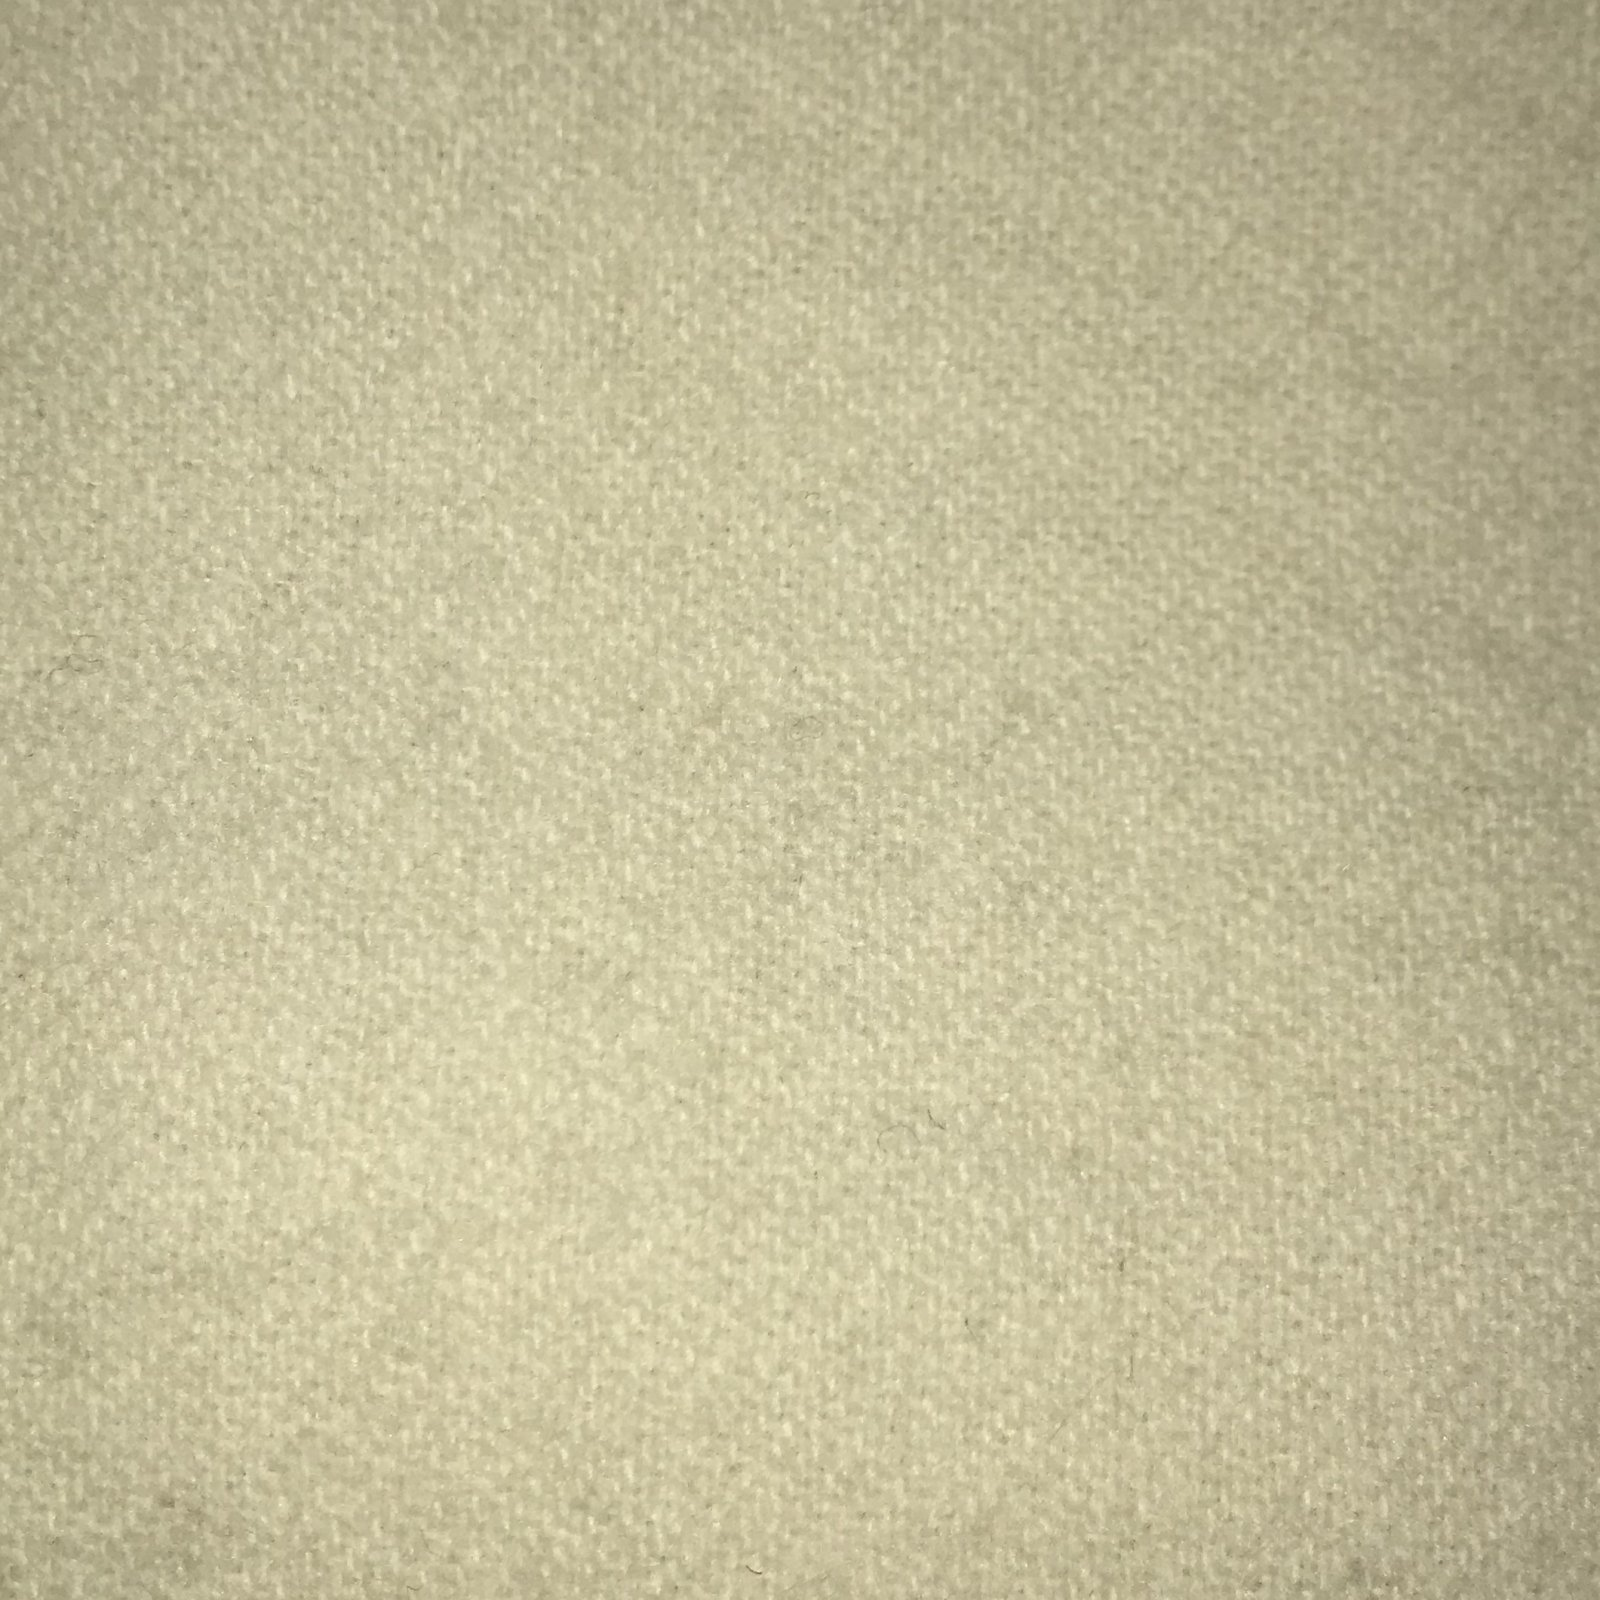 WOOL- Cream Fat Quarter